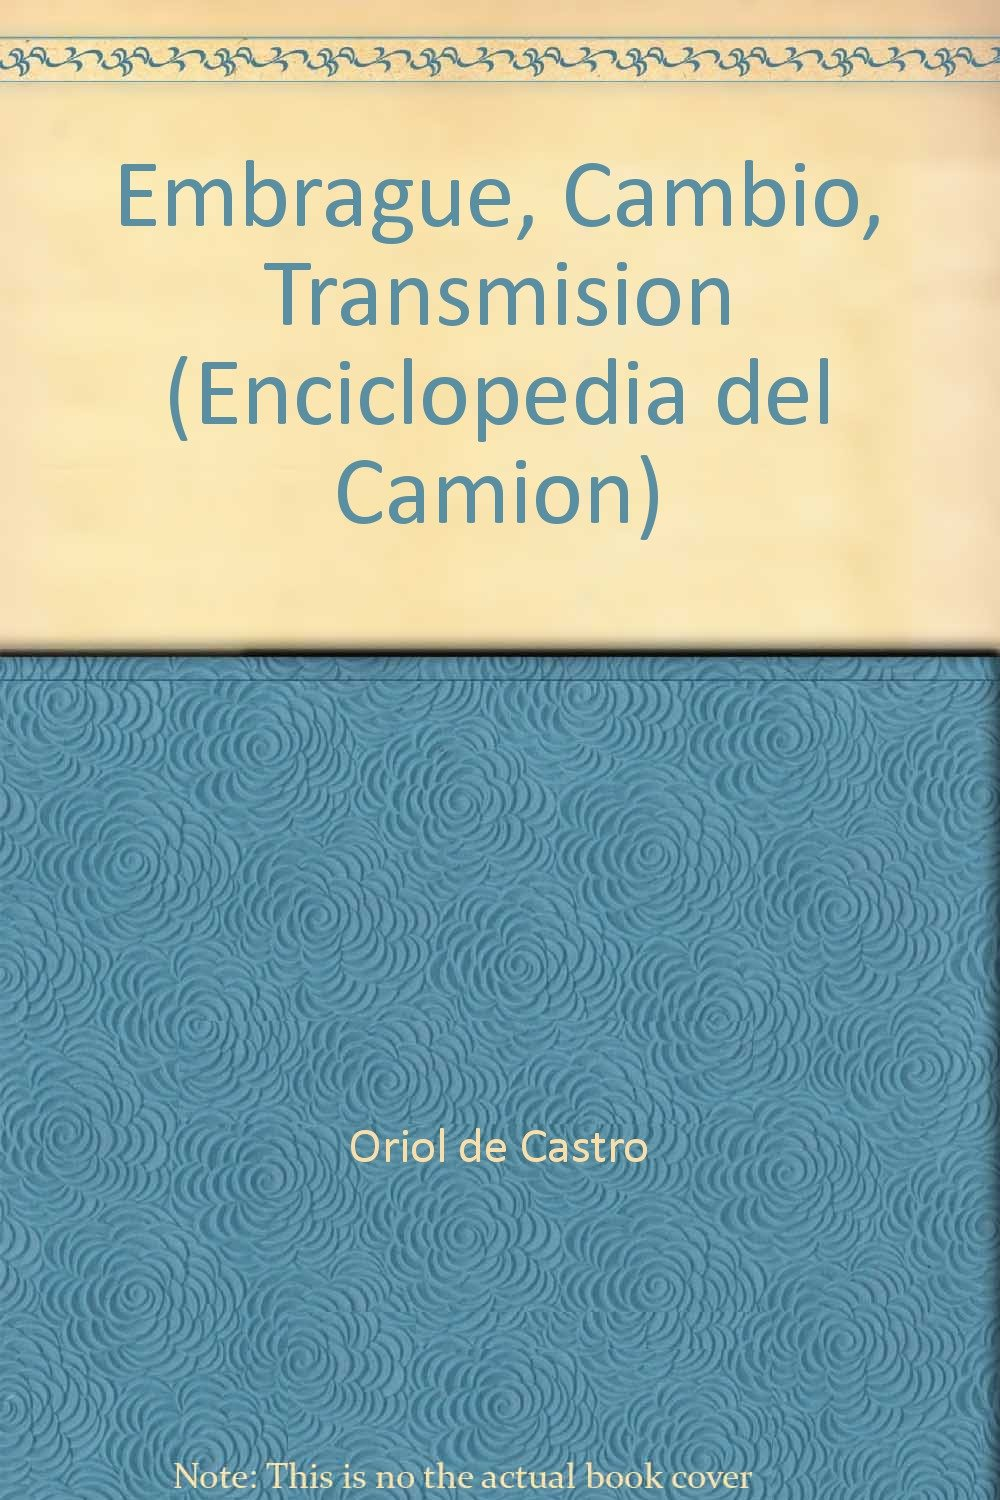 Embrague, Cambio, Transmision (Enciclopedia del Camion) (Spanish) Paperback – 1993